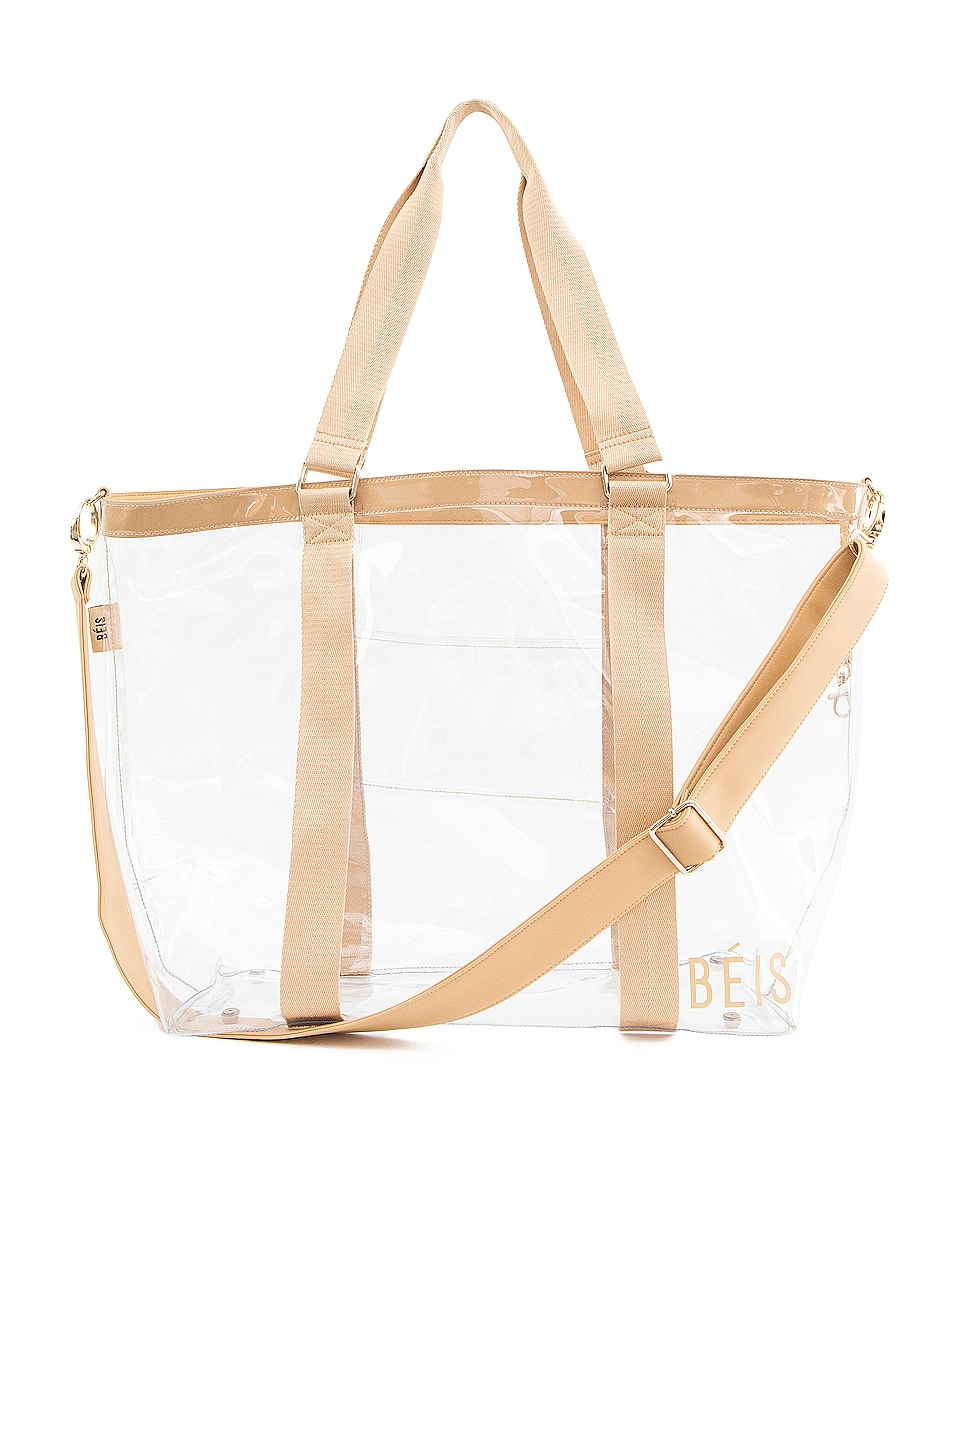 BEIS Beach Tote Bag in Beige